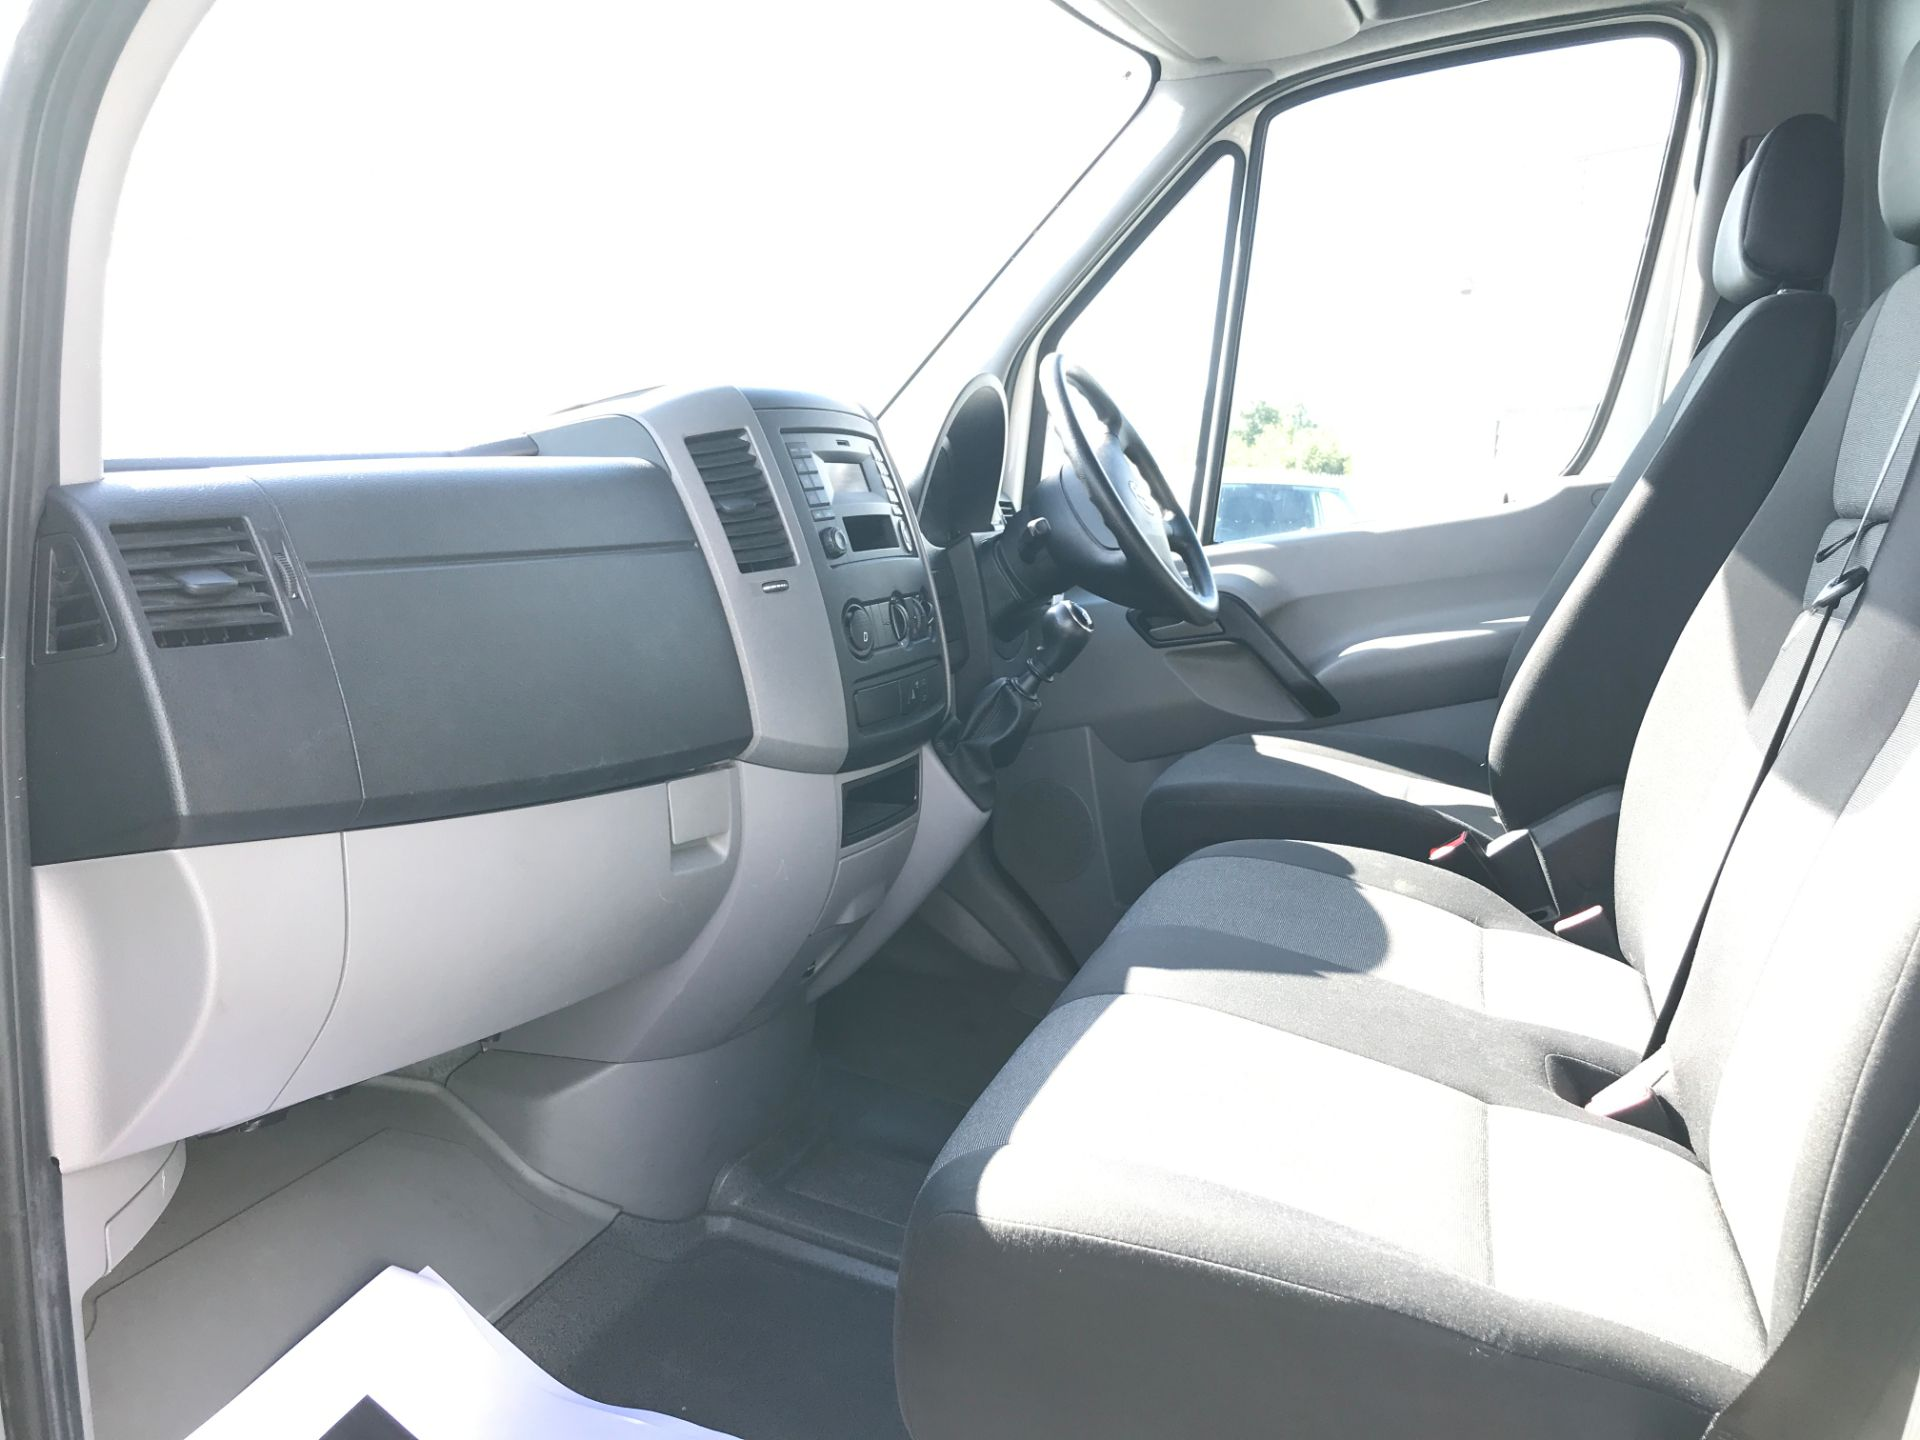 2016 Volkswagen Crafter  CR35 LWB HIGH ROOF 2.0TDI 136PS EURO 5 (GJ16LLM) Image 12